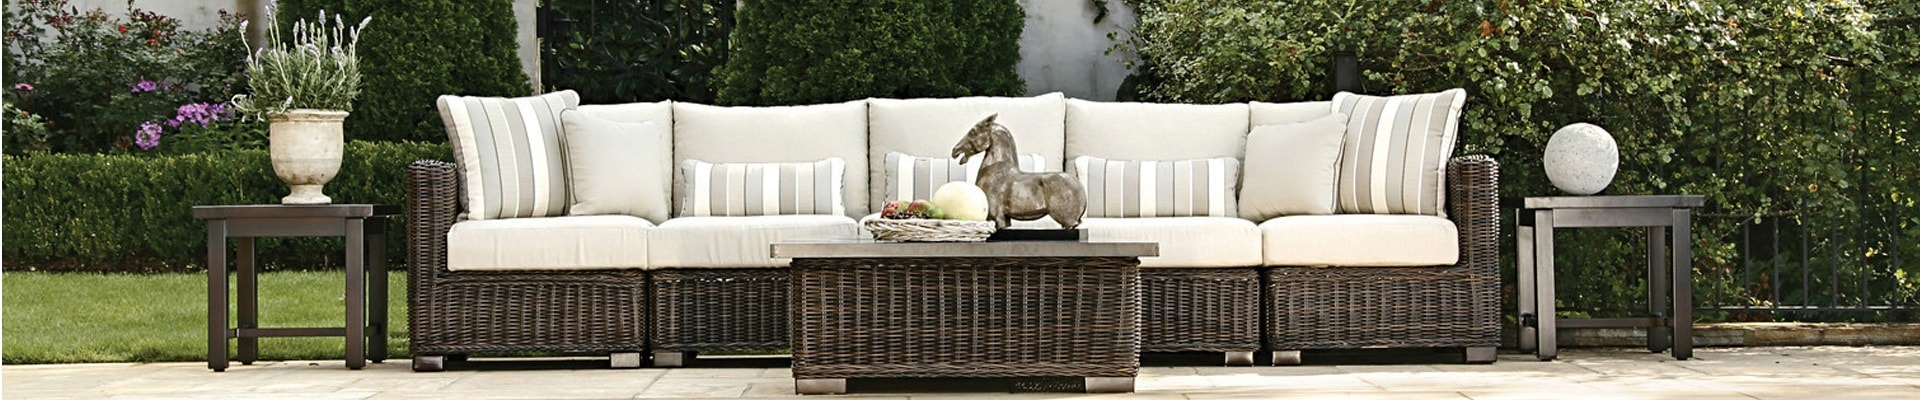 Northern Virginia Outdoor Furniture Tysons Corner